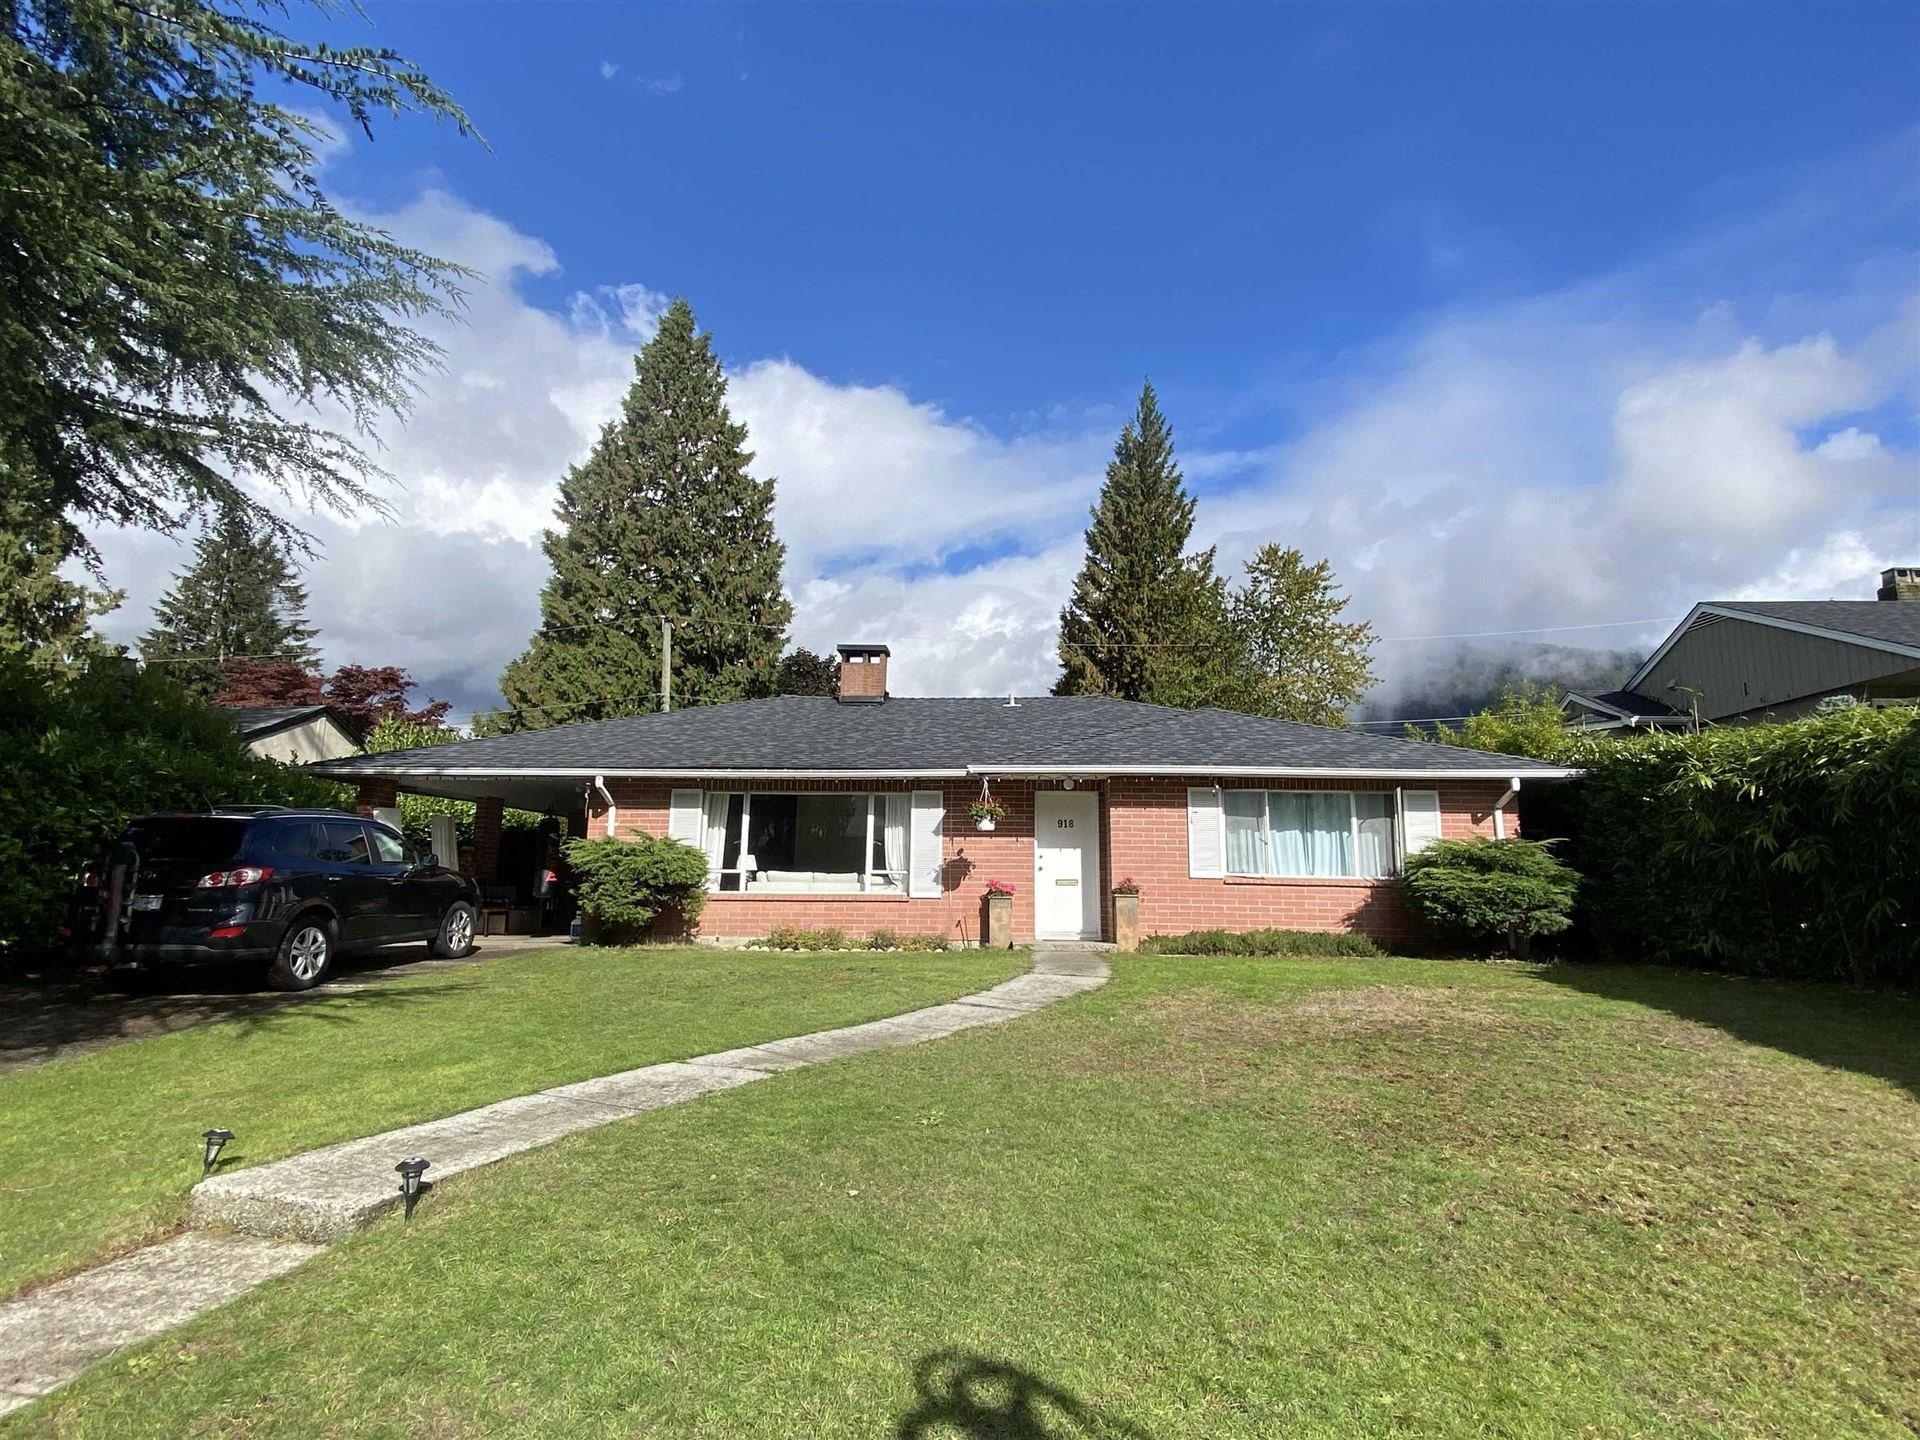 Photo of 918 WENTWORTH AVENUE, North Vancouver, BC V7R 1R7 (MLS # R2624148)